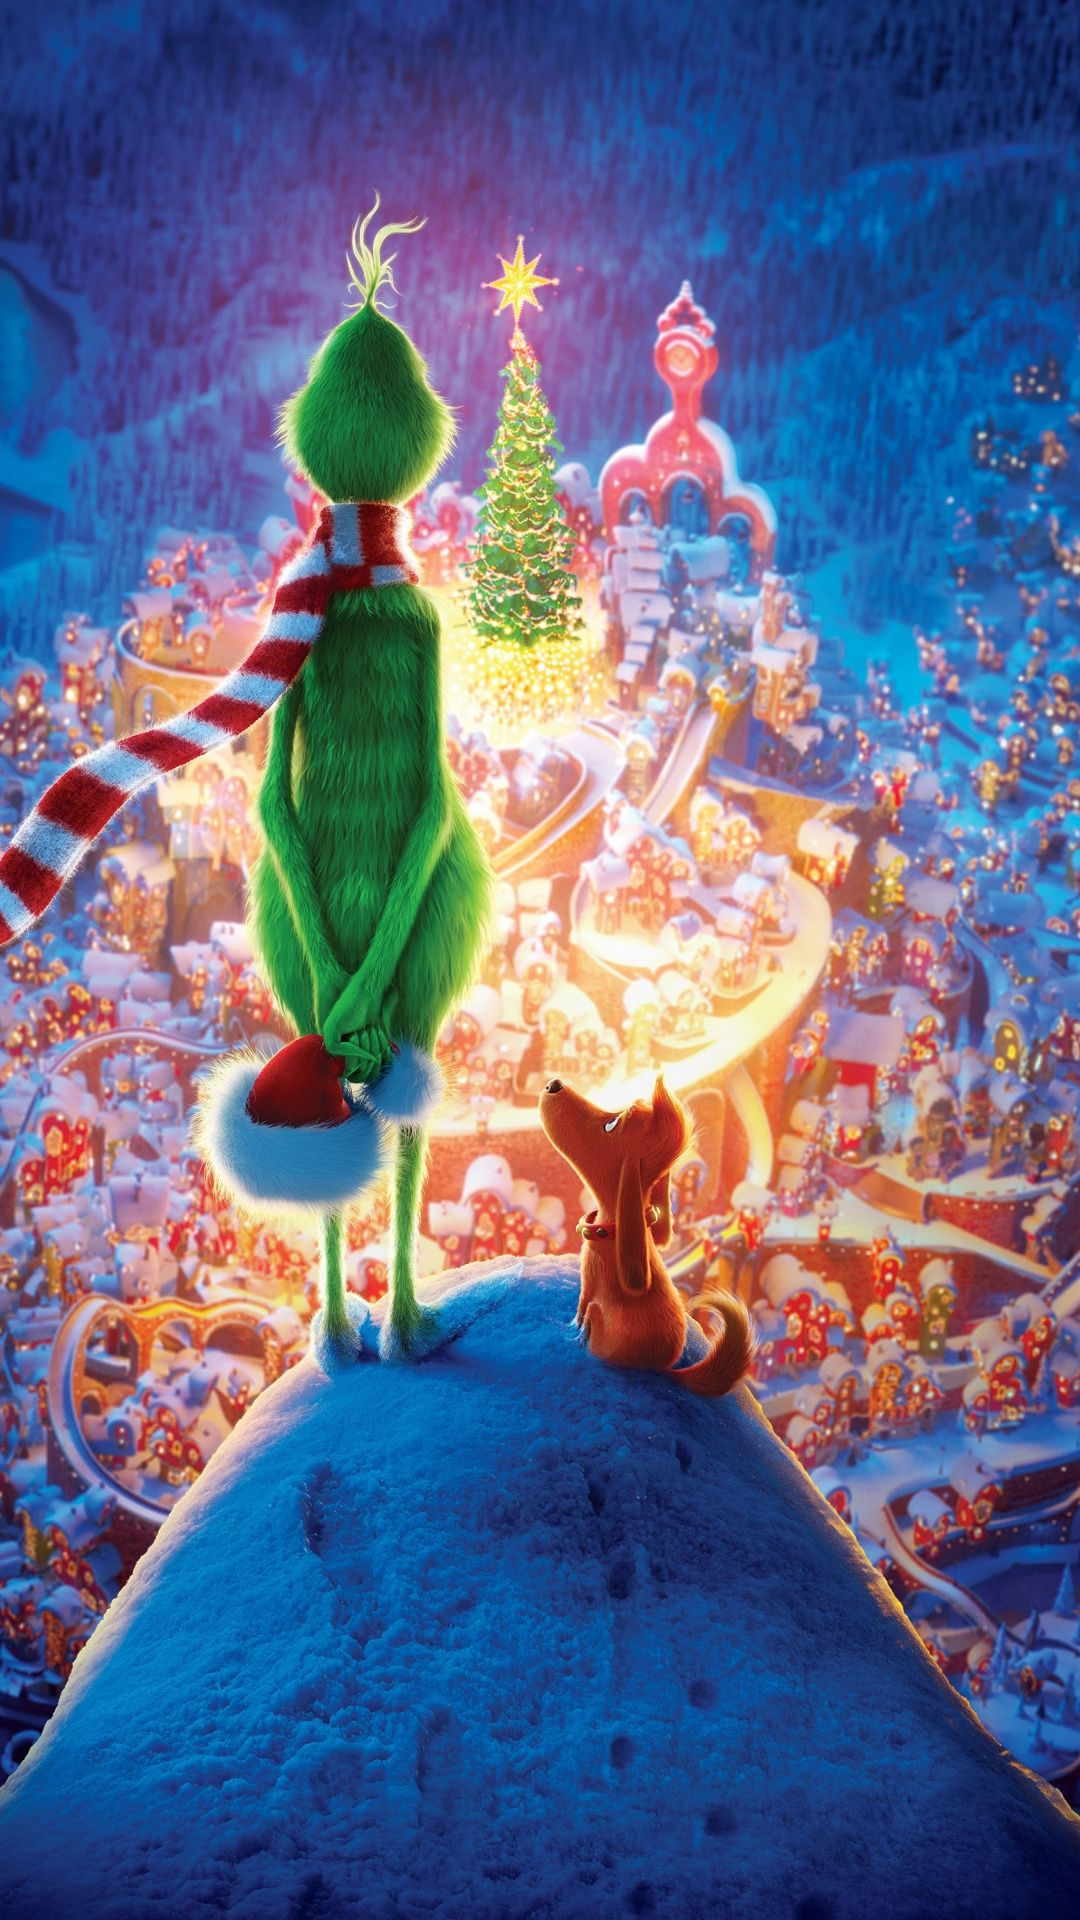 The Grinch, 2018 movie, Christmas, 1080x1920 wallpaper